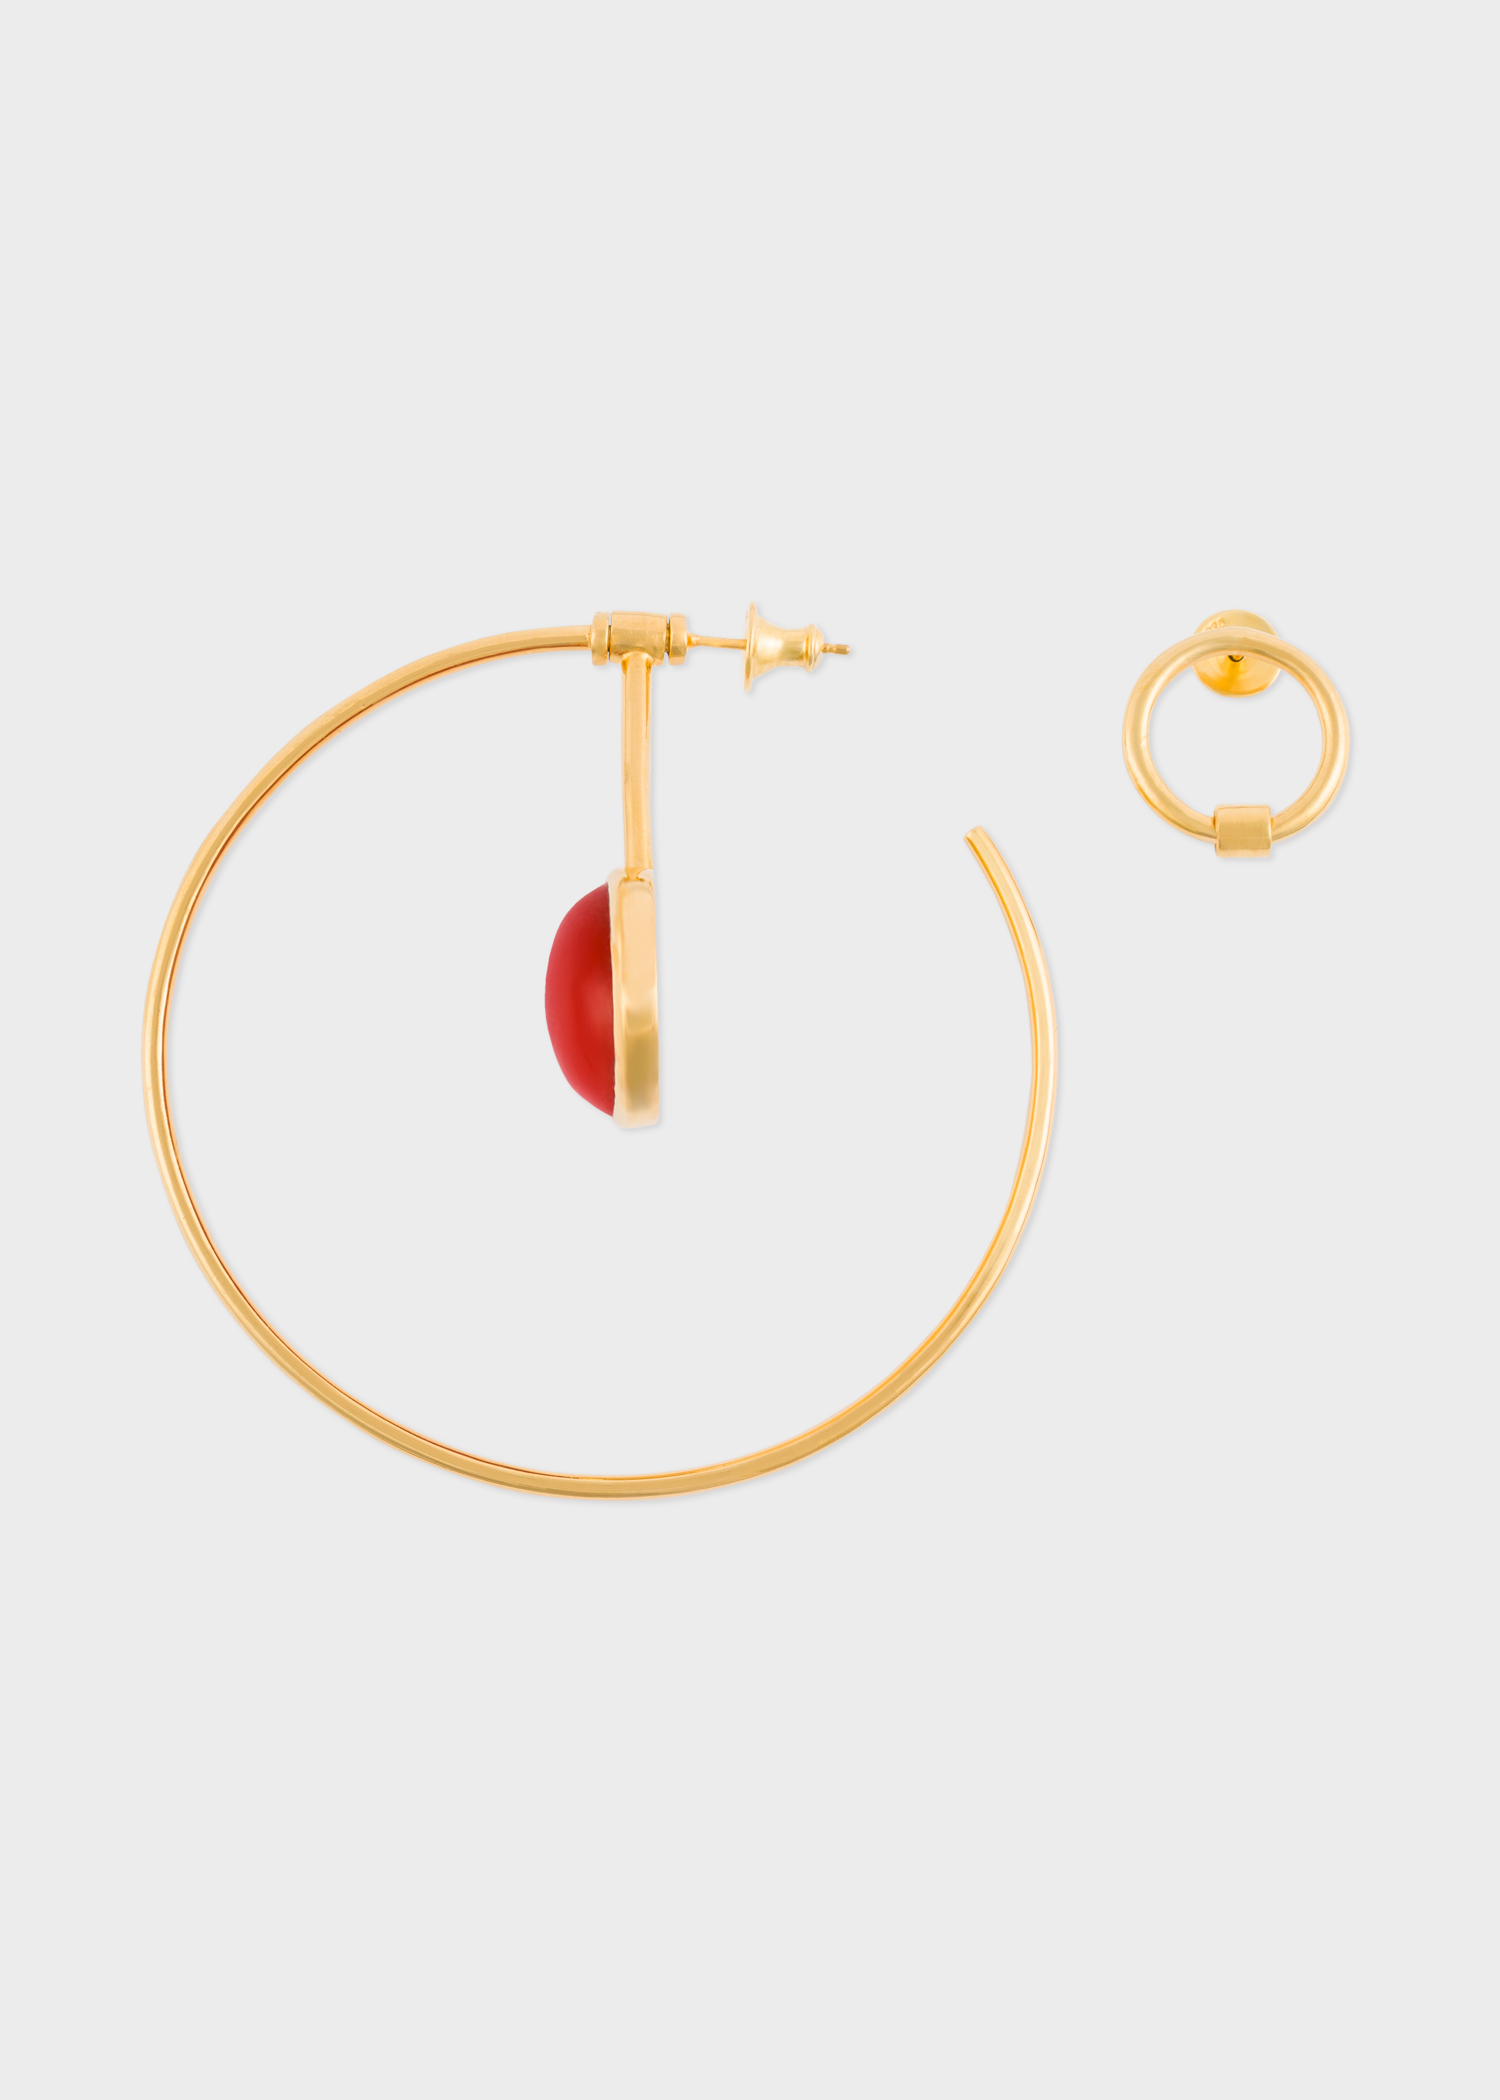 Paul Smith X Rachel Entwistle Gold Pendulum Hoop Earrings With Red C Stone